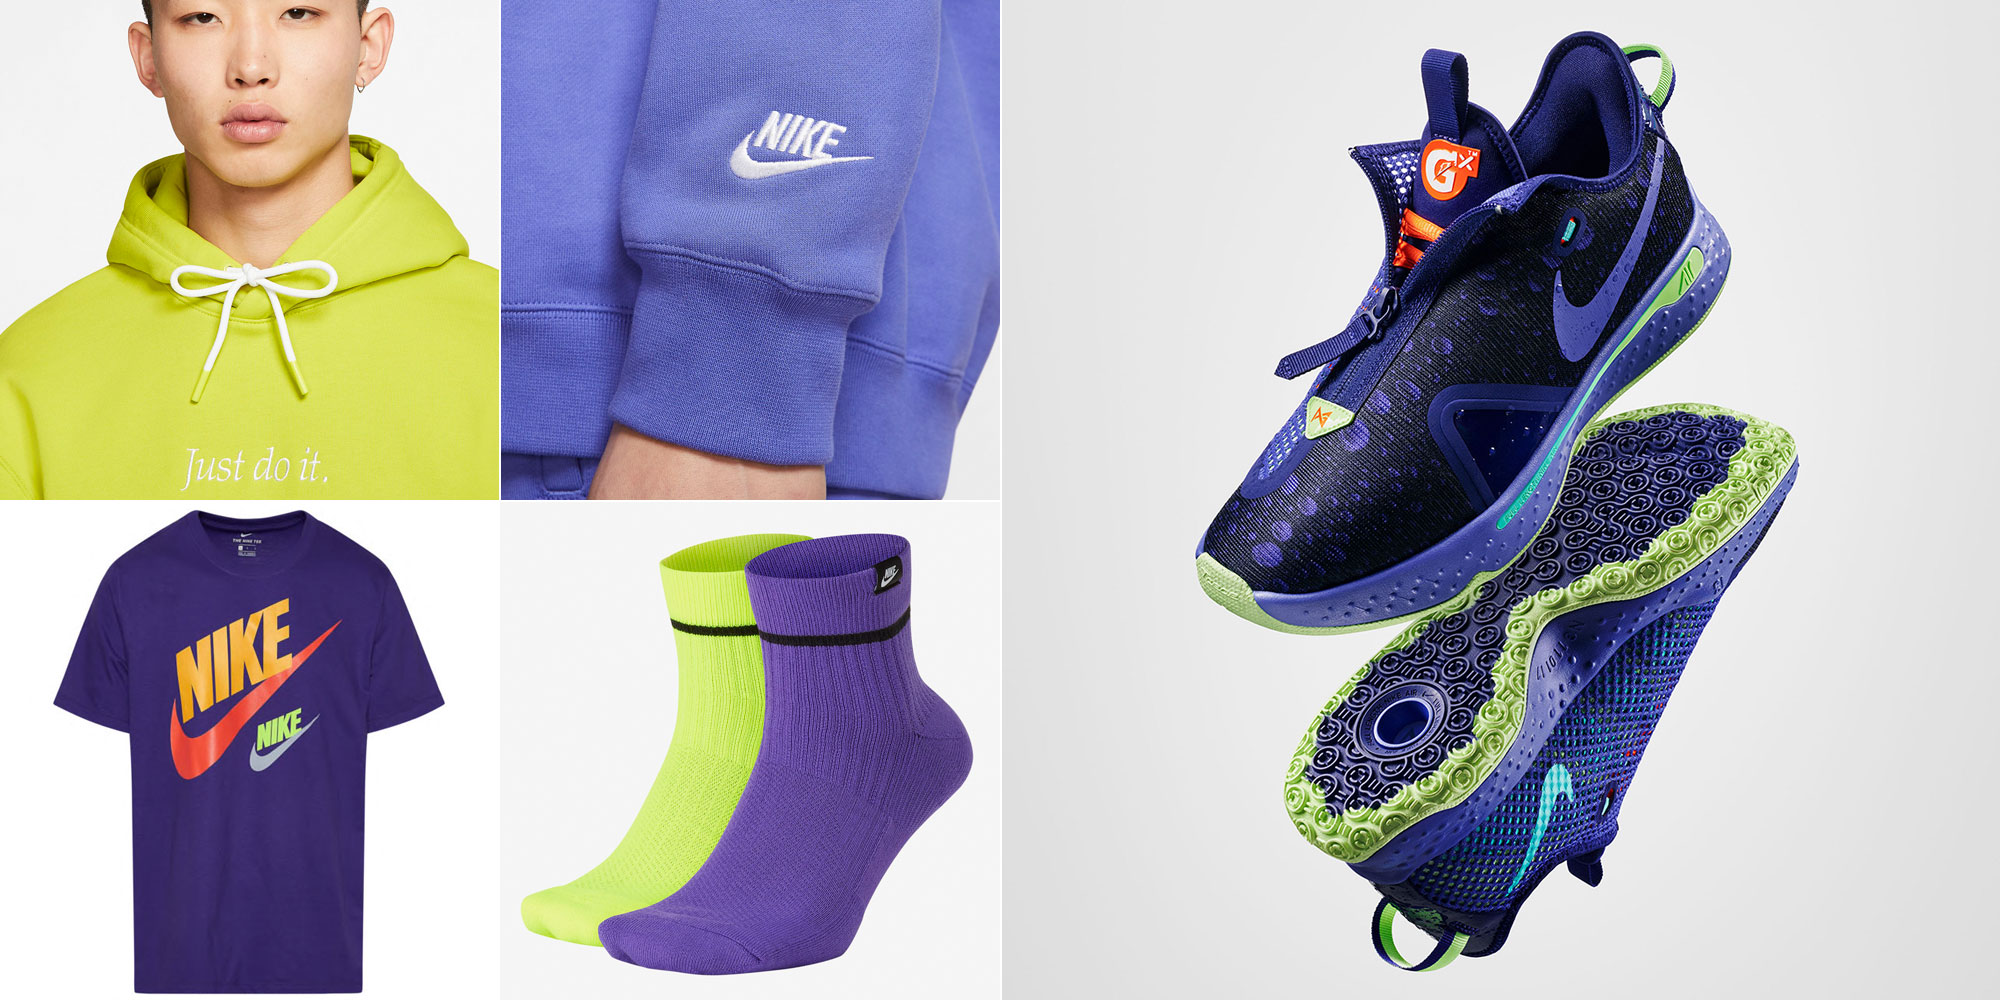 nike-pg-4-gatorade-clothing-match